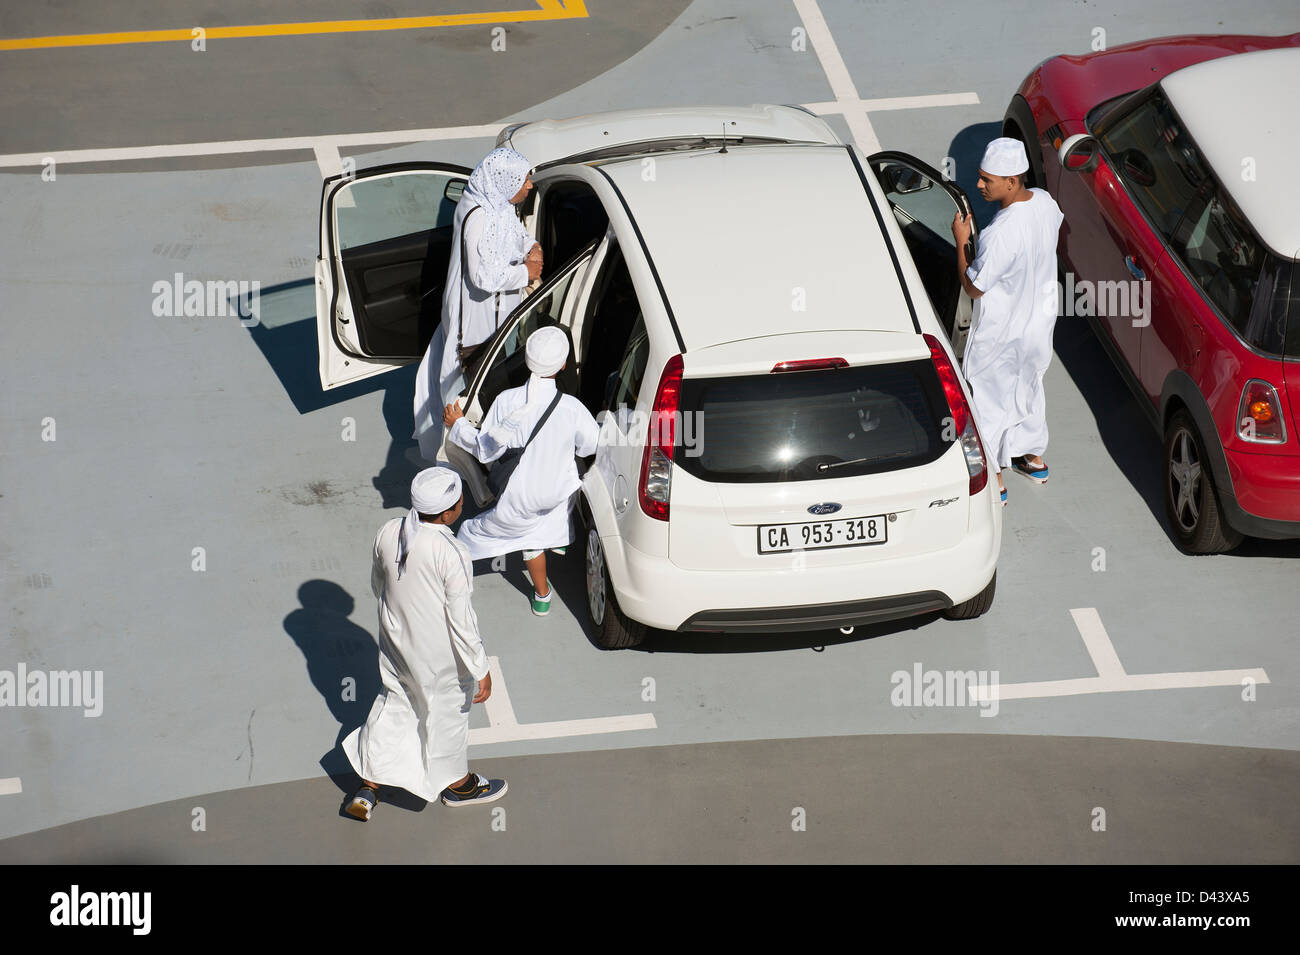 Muslim family in traditional white clothing get into a saloon car - Stock Image